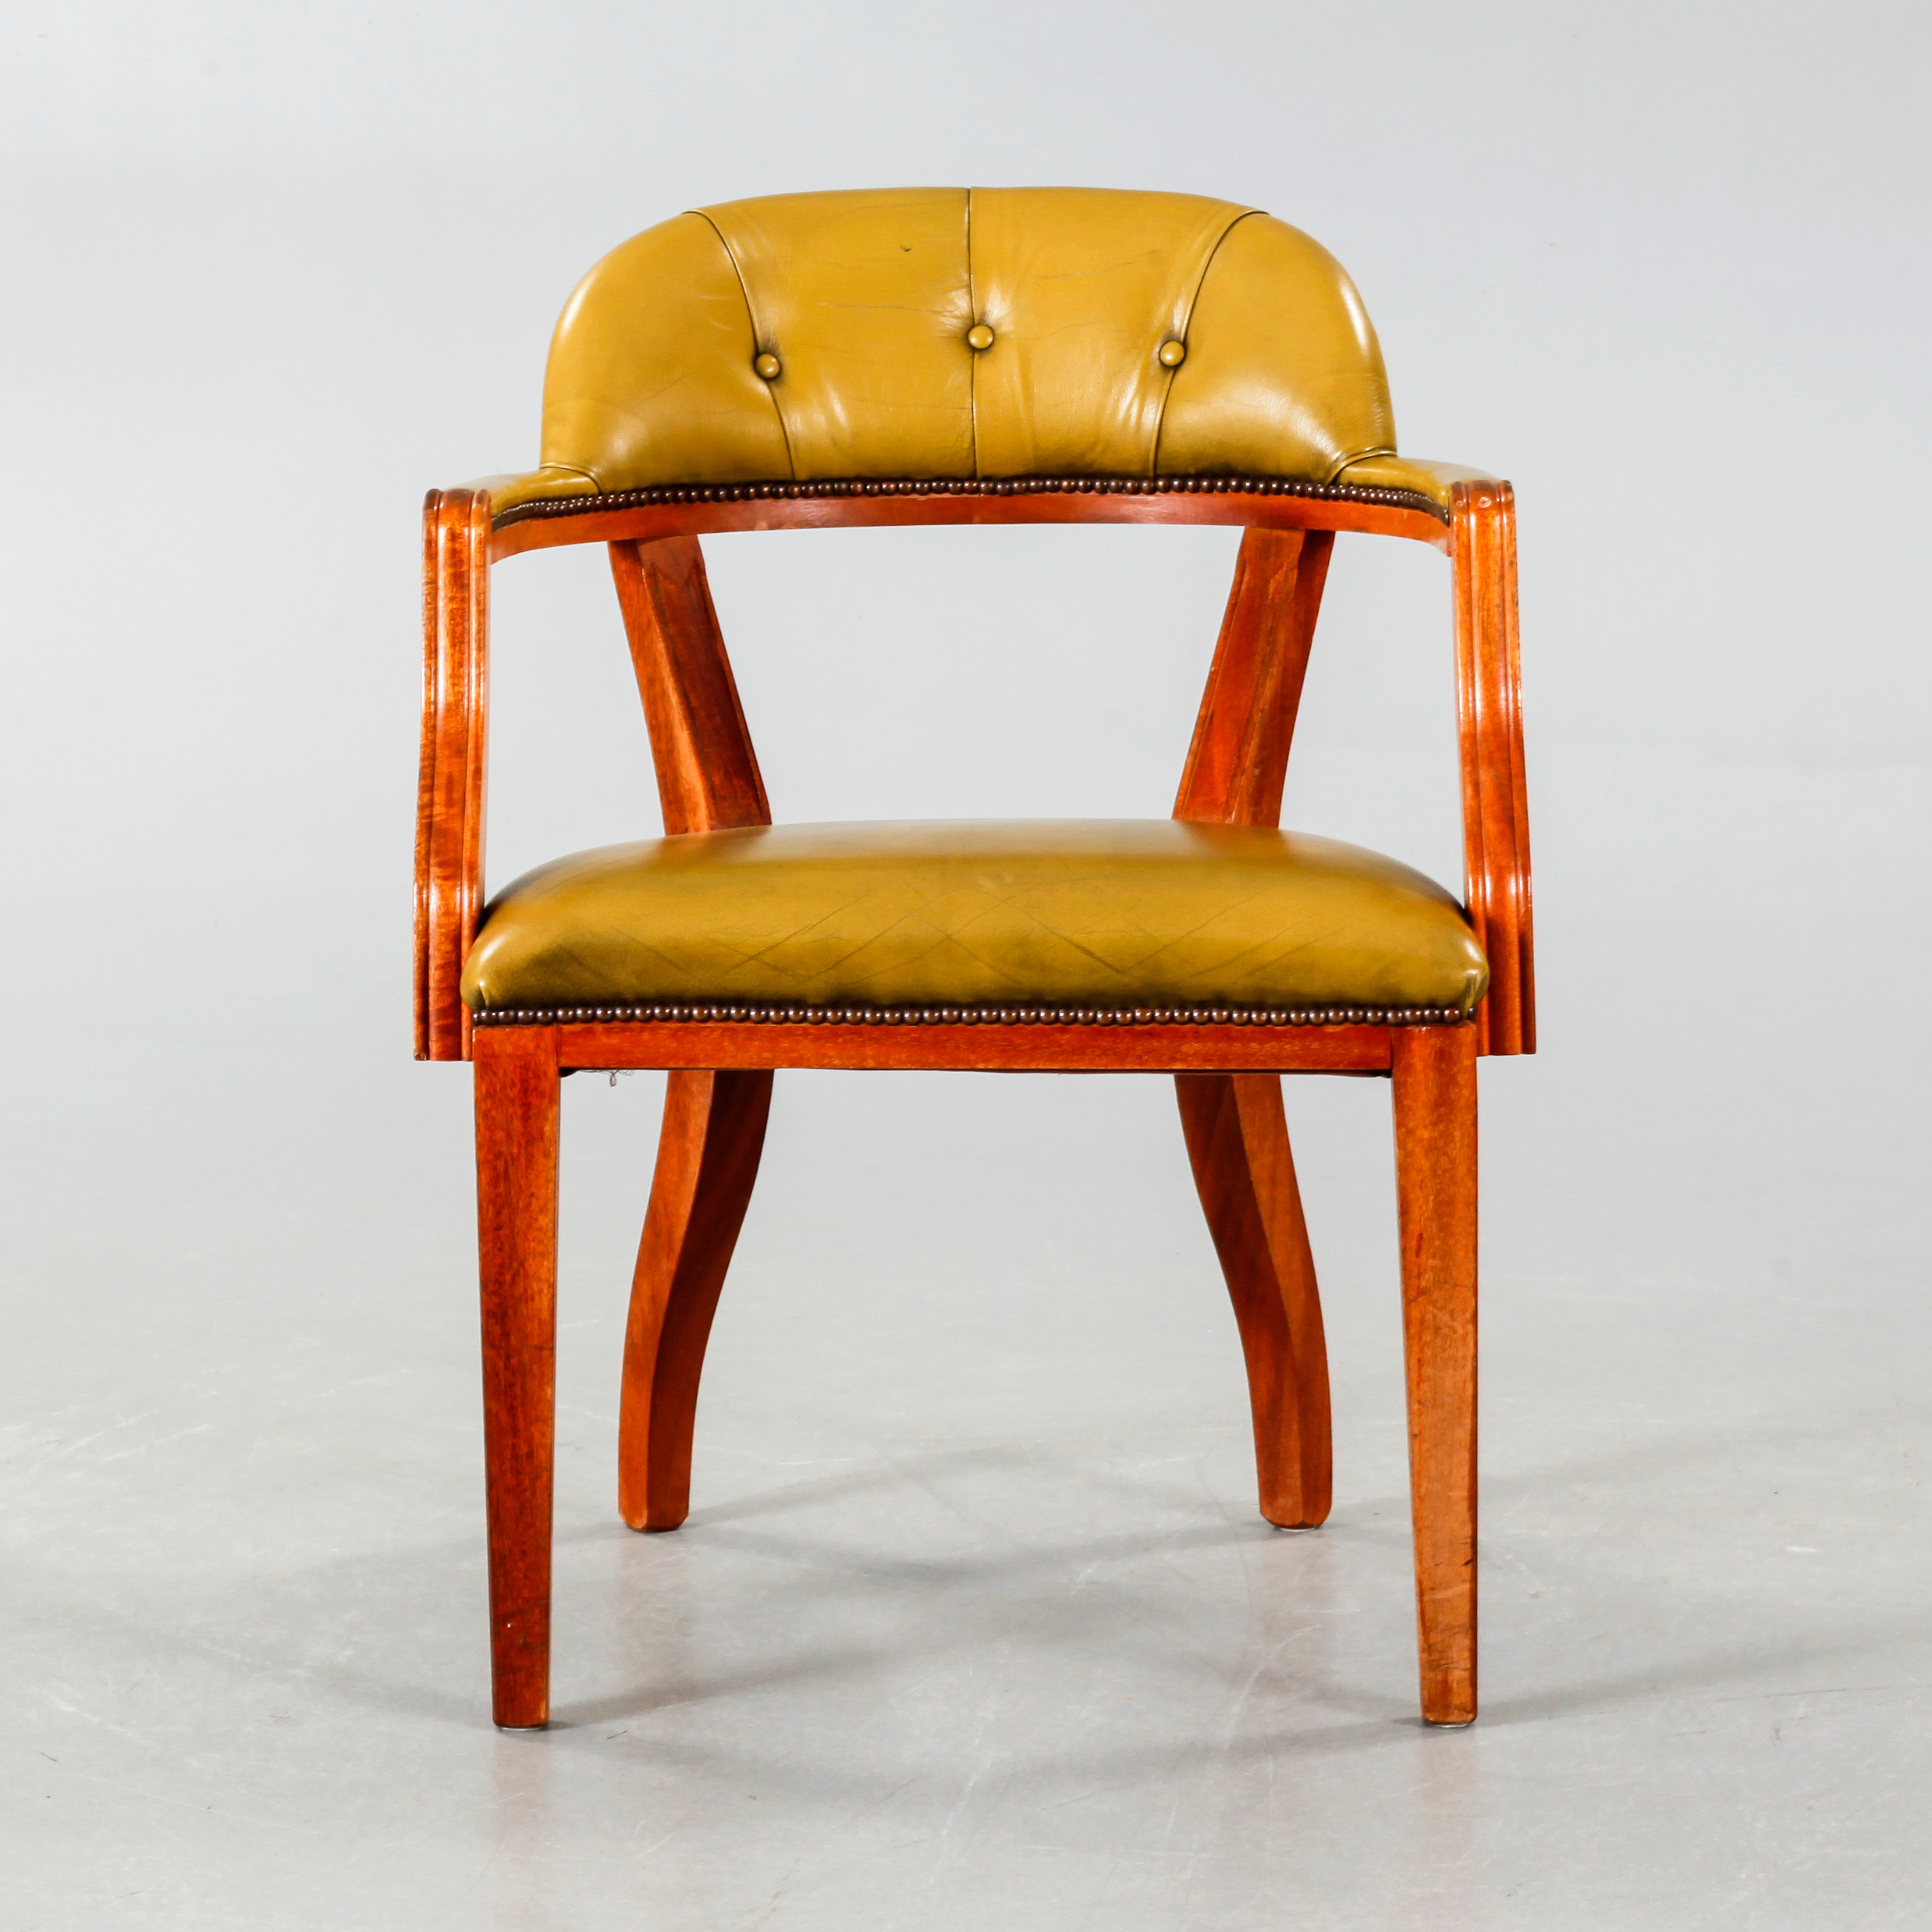 A Desk Chair From The Fourth Quarter Of The 20th Century